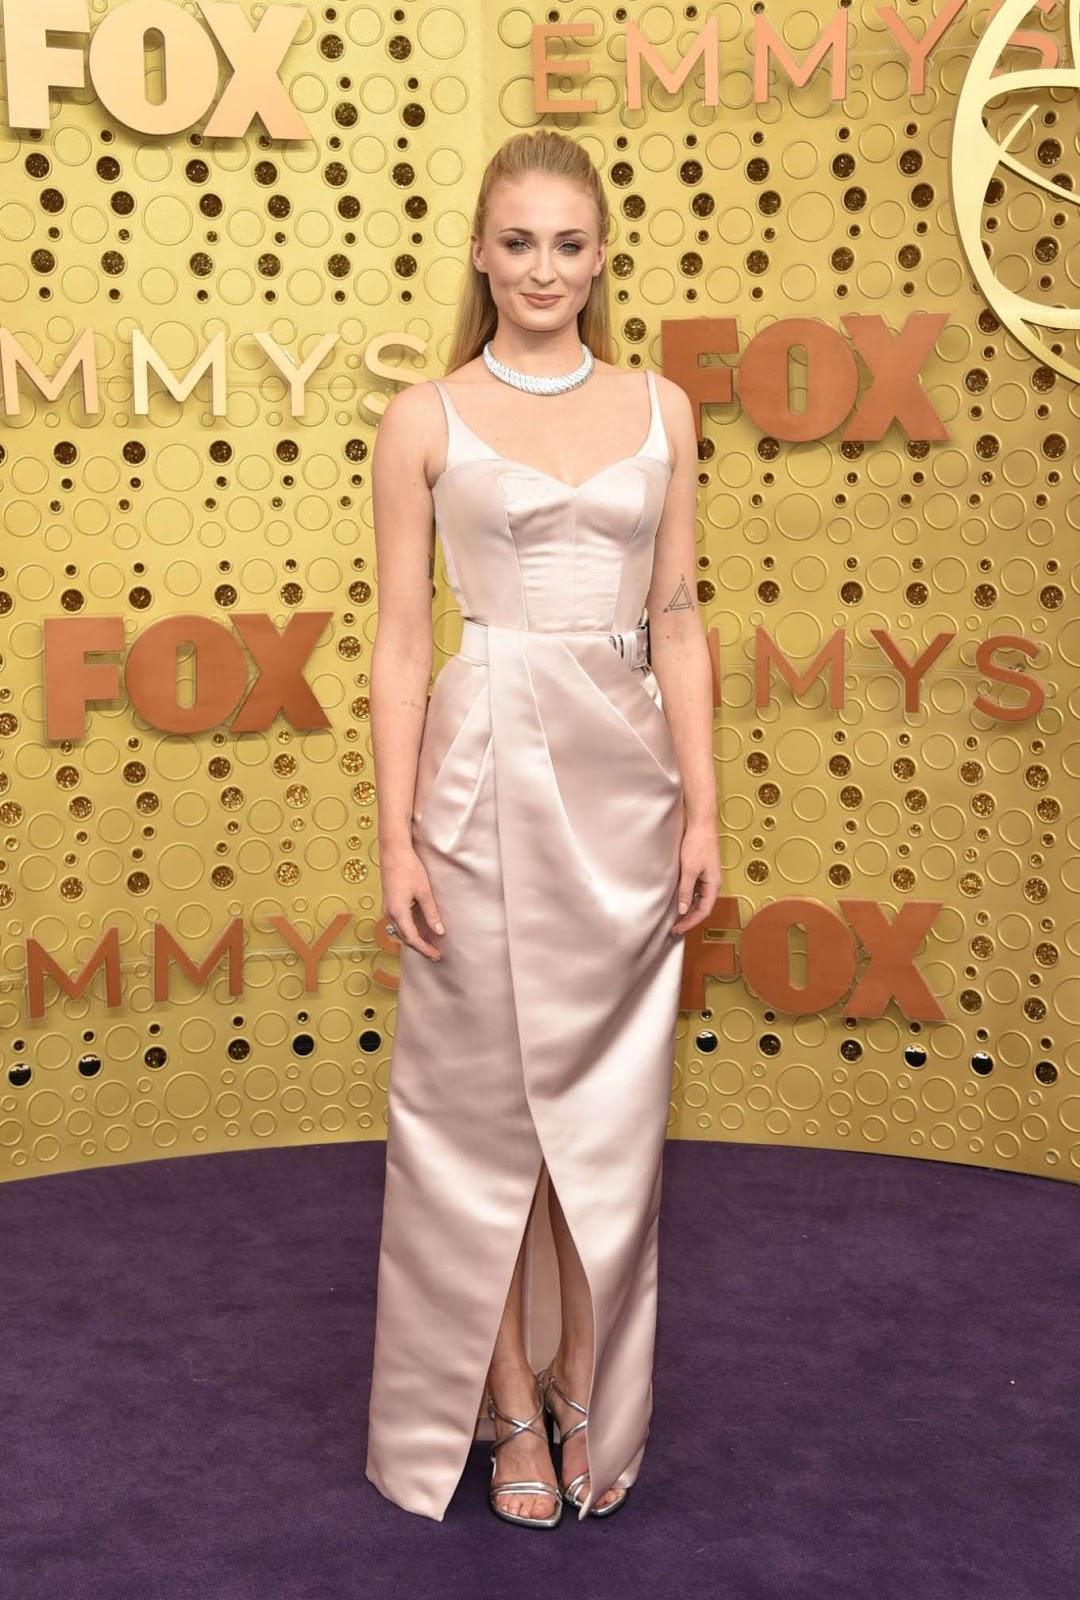 Sophie Turner dazzles in Louis Vuitton at the 2019 Emmy Awards in Los Angeles